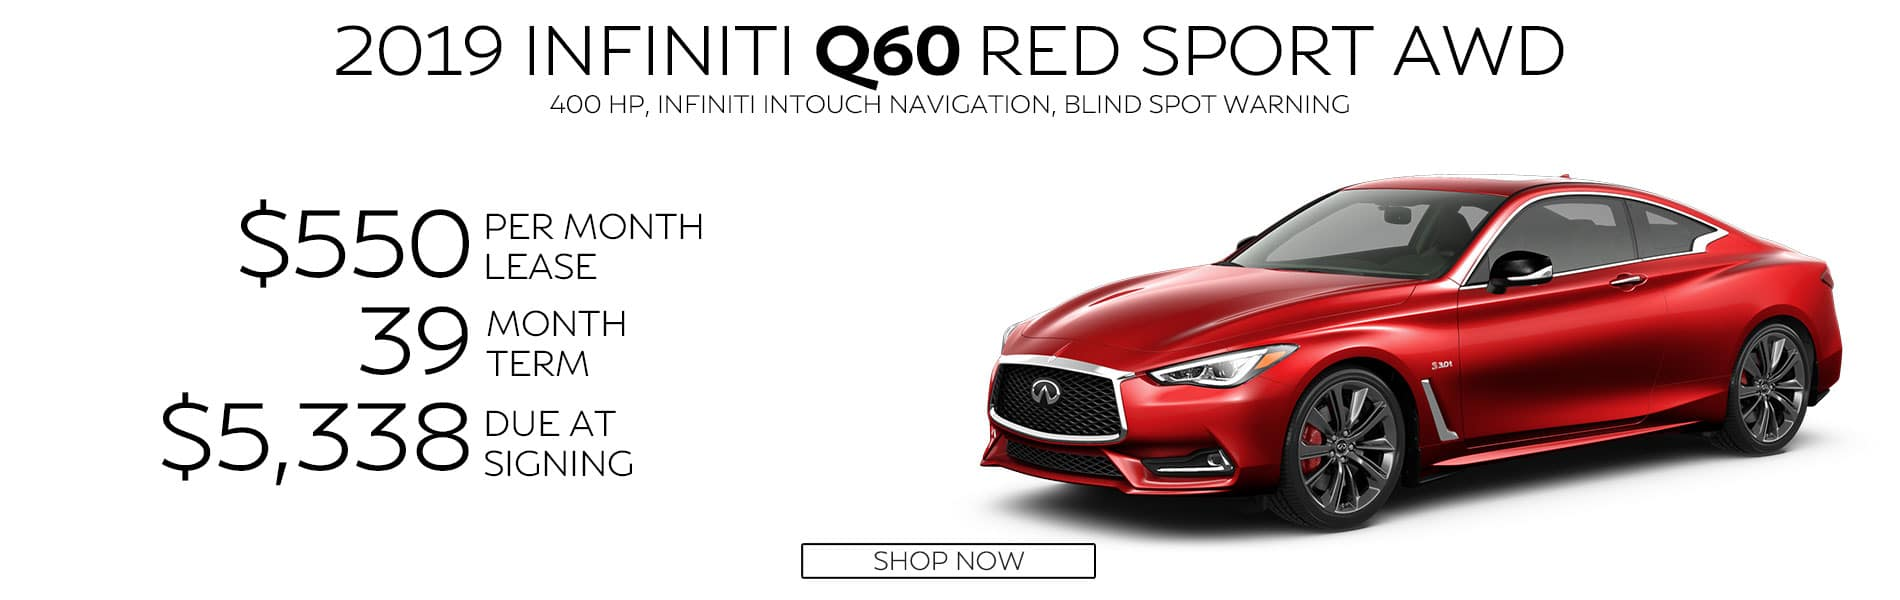 Lease a 2019 Q60 RED SPORT AWD for $550 per month with $5,338 due at signing